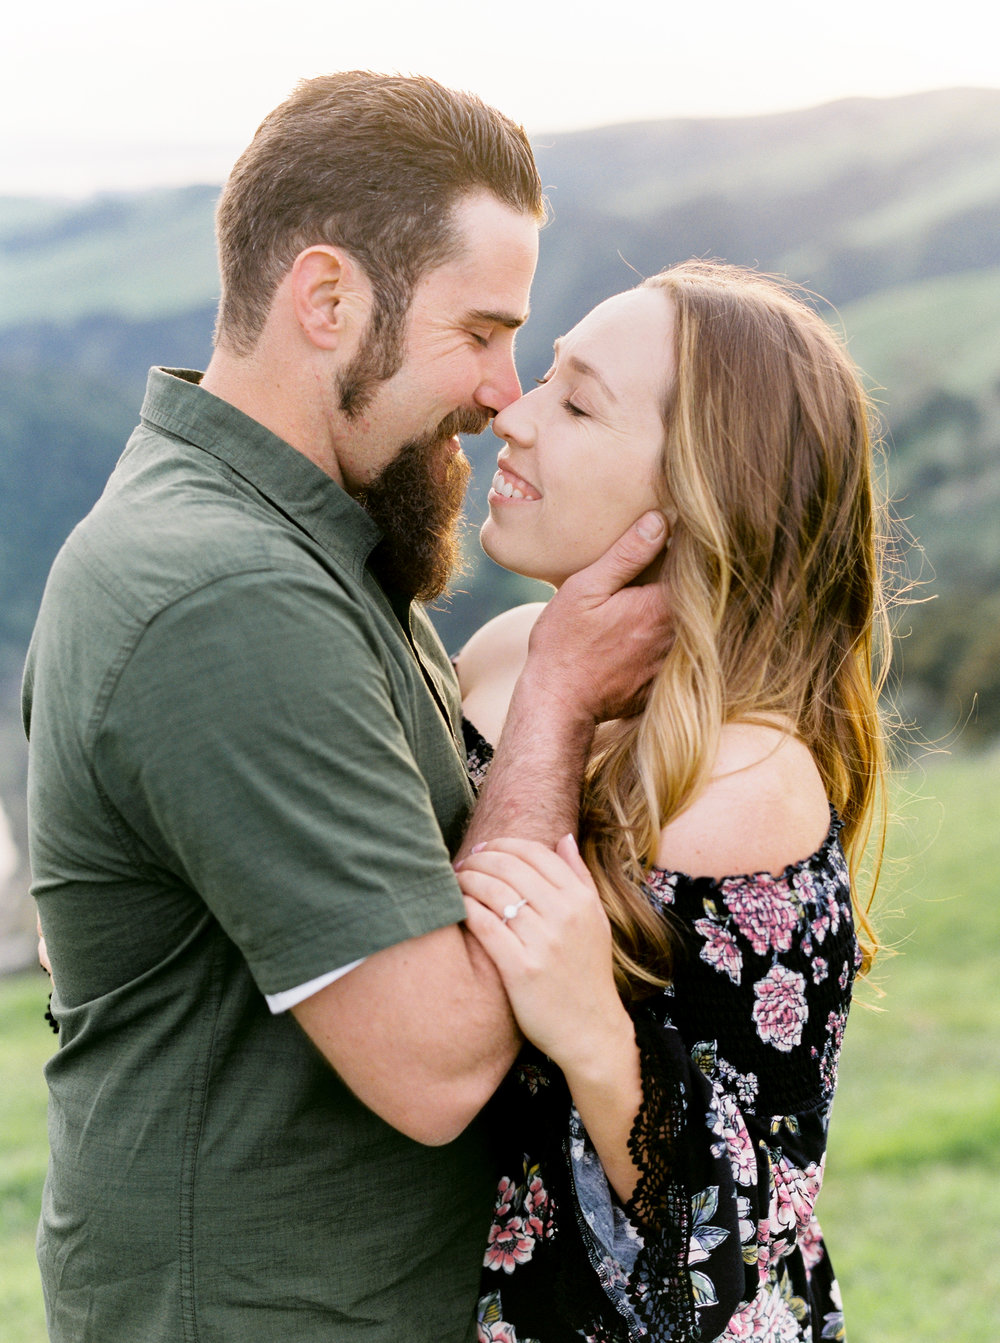 Sunol California Engagement Shoot - Kristine Herman Photography-22.jpg